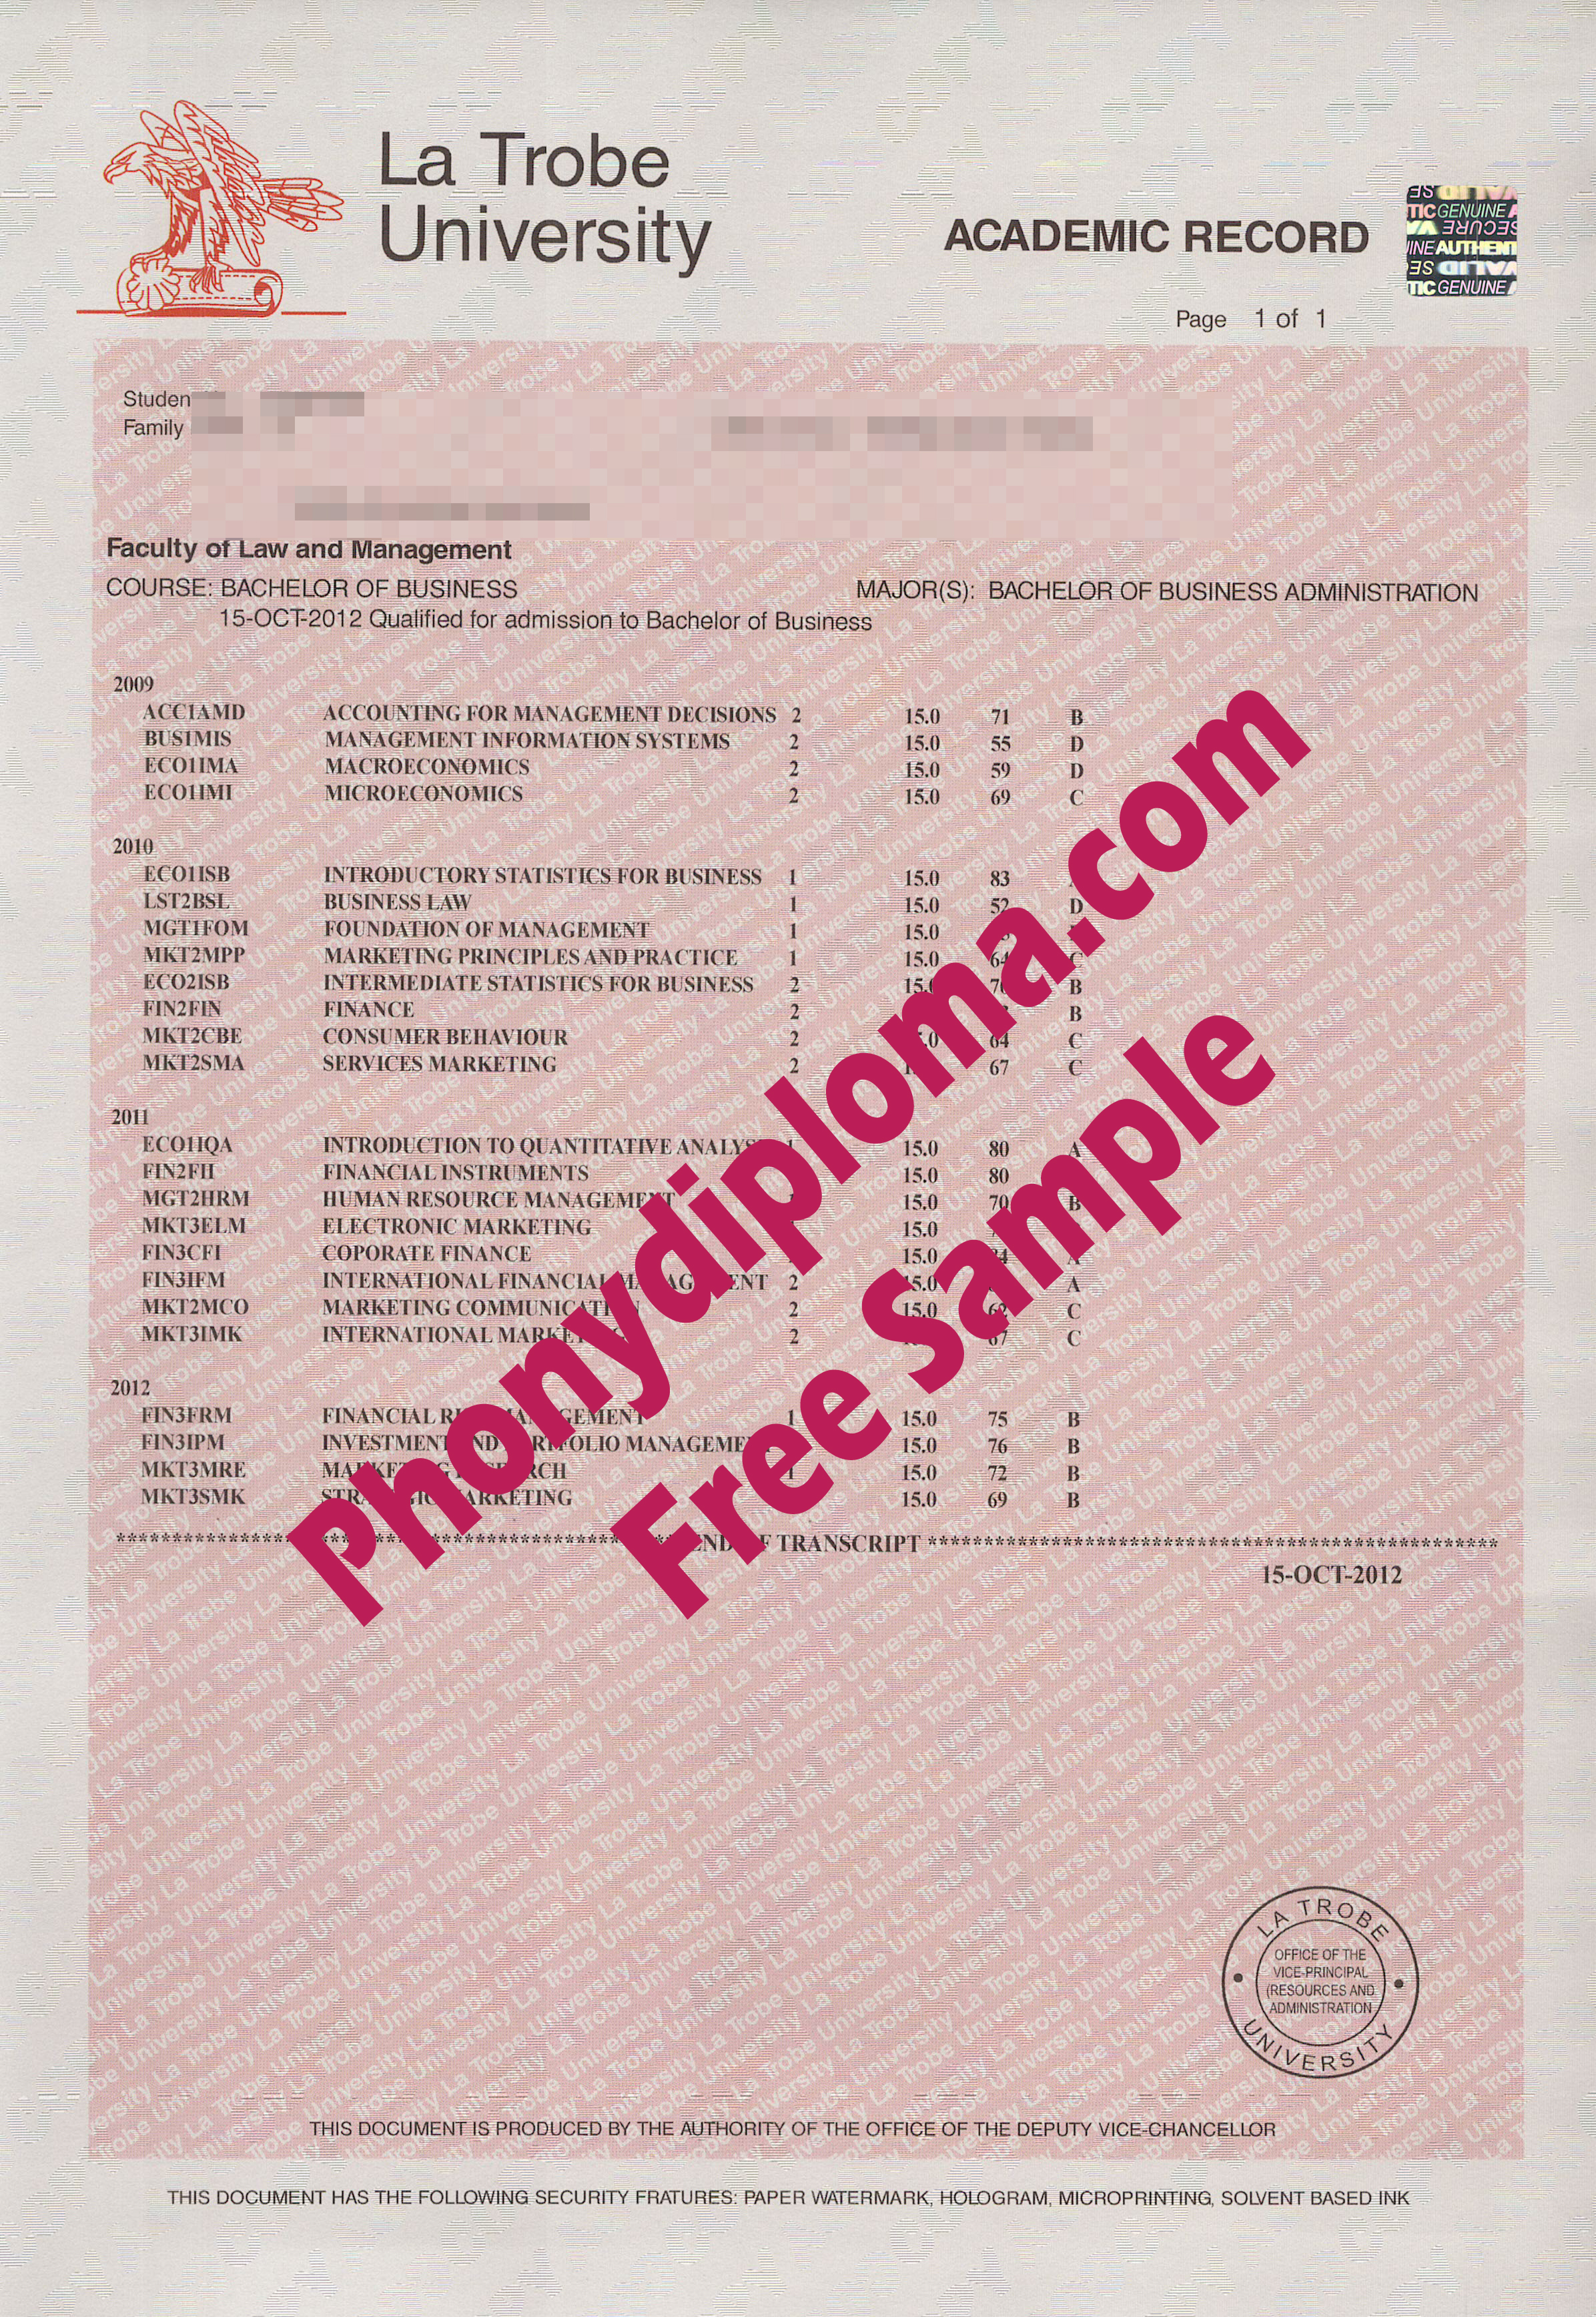 La Trobe University Actual Match Transcript Free Sample From Phonydiploma